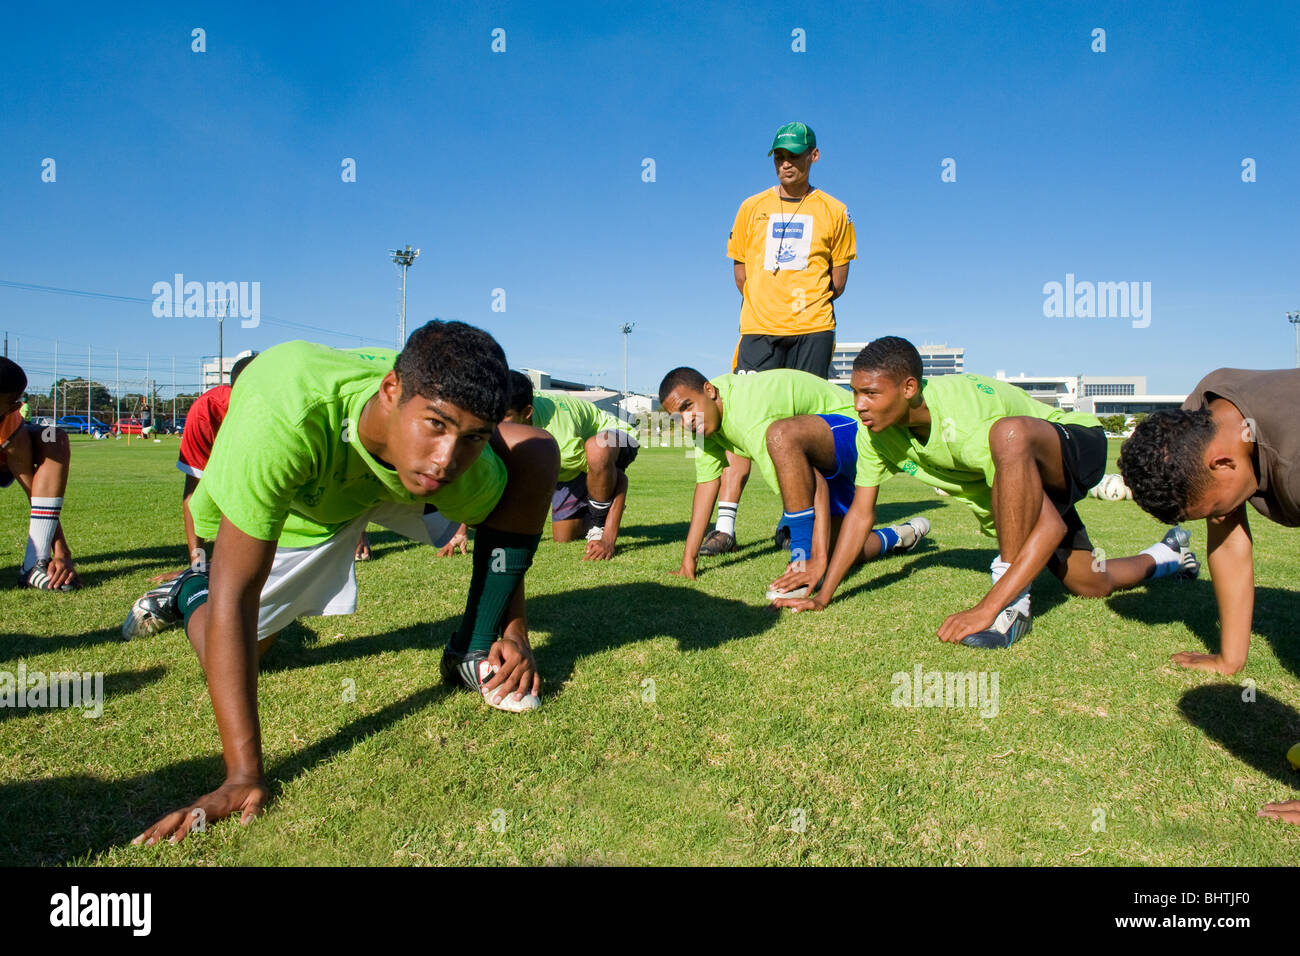 Coach instructing players at Old Mutual Football Academy, Cape Town, South Africa - Stock Image